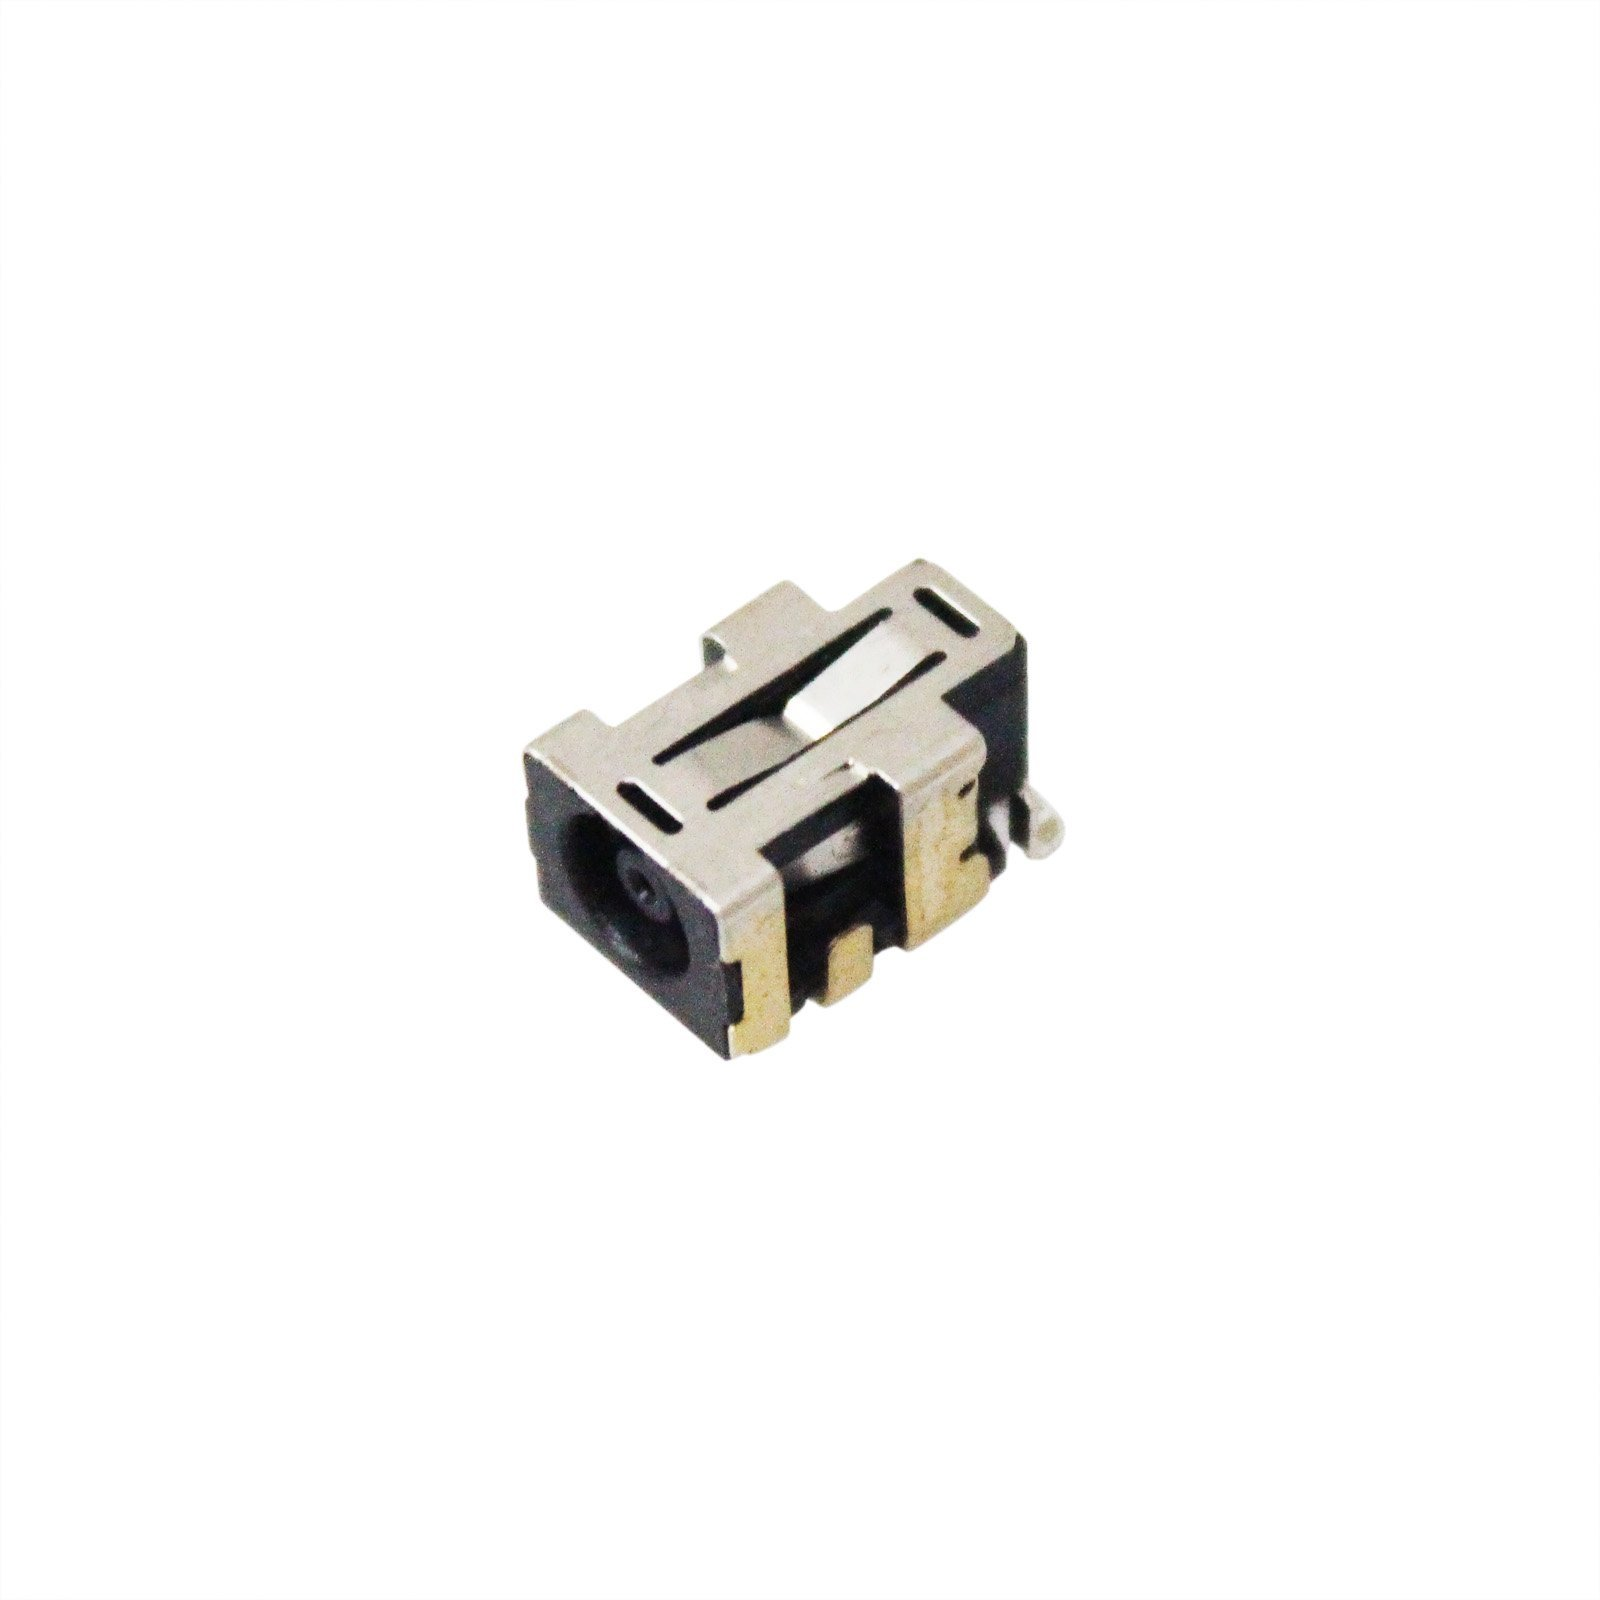 GinTai DC Power Jack Replacement for ASUS Compatible with n501jw ux501jw G501J G501JW G501JW-DS71 UX501V UX501VW by GinTai (Image #6)